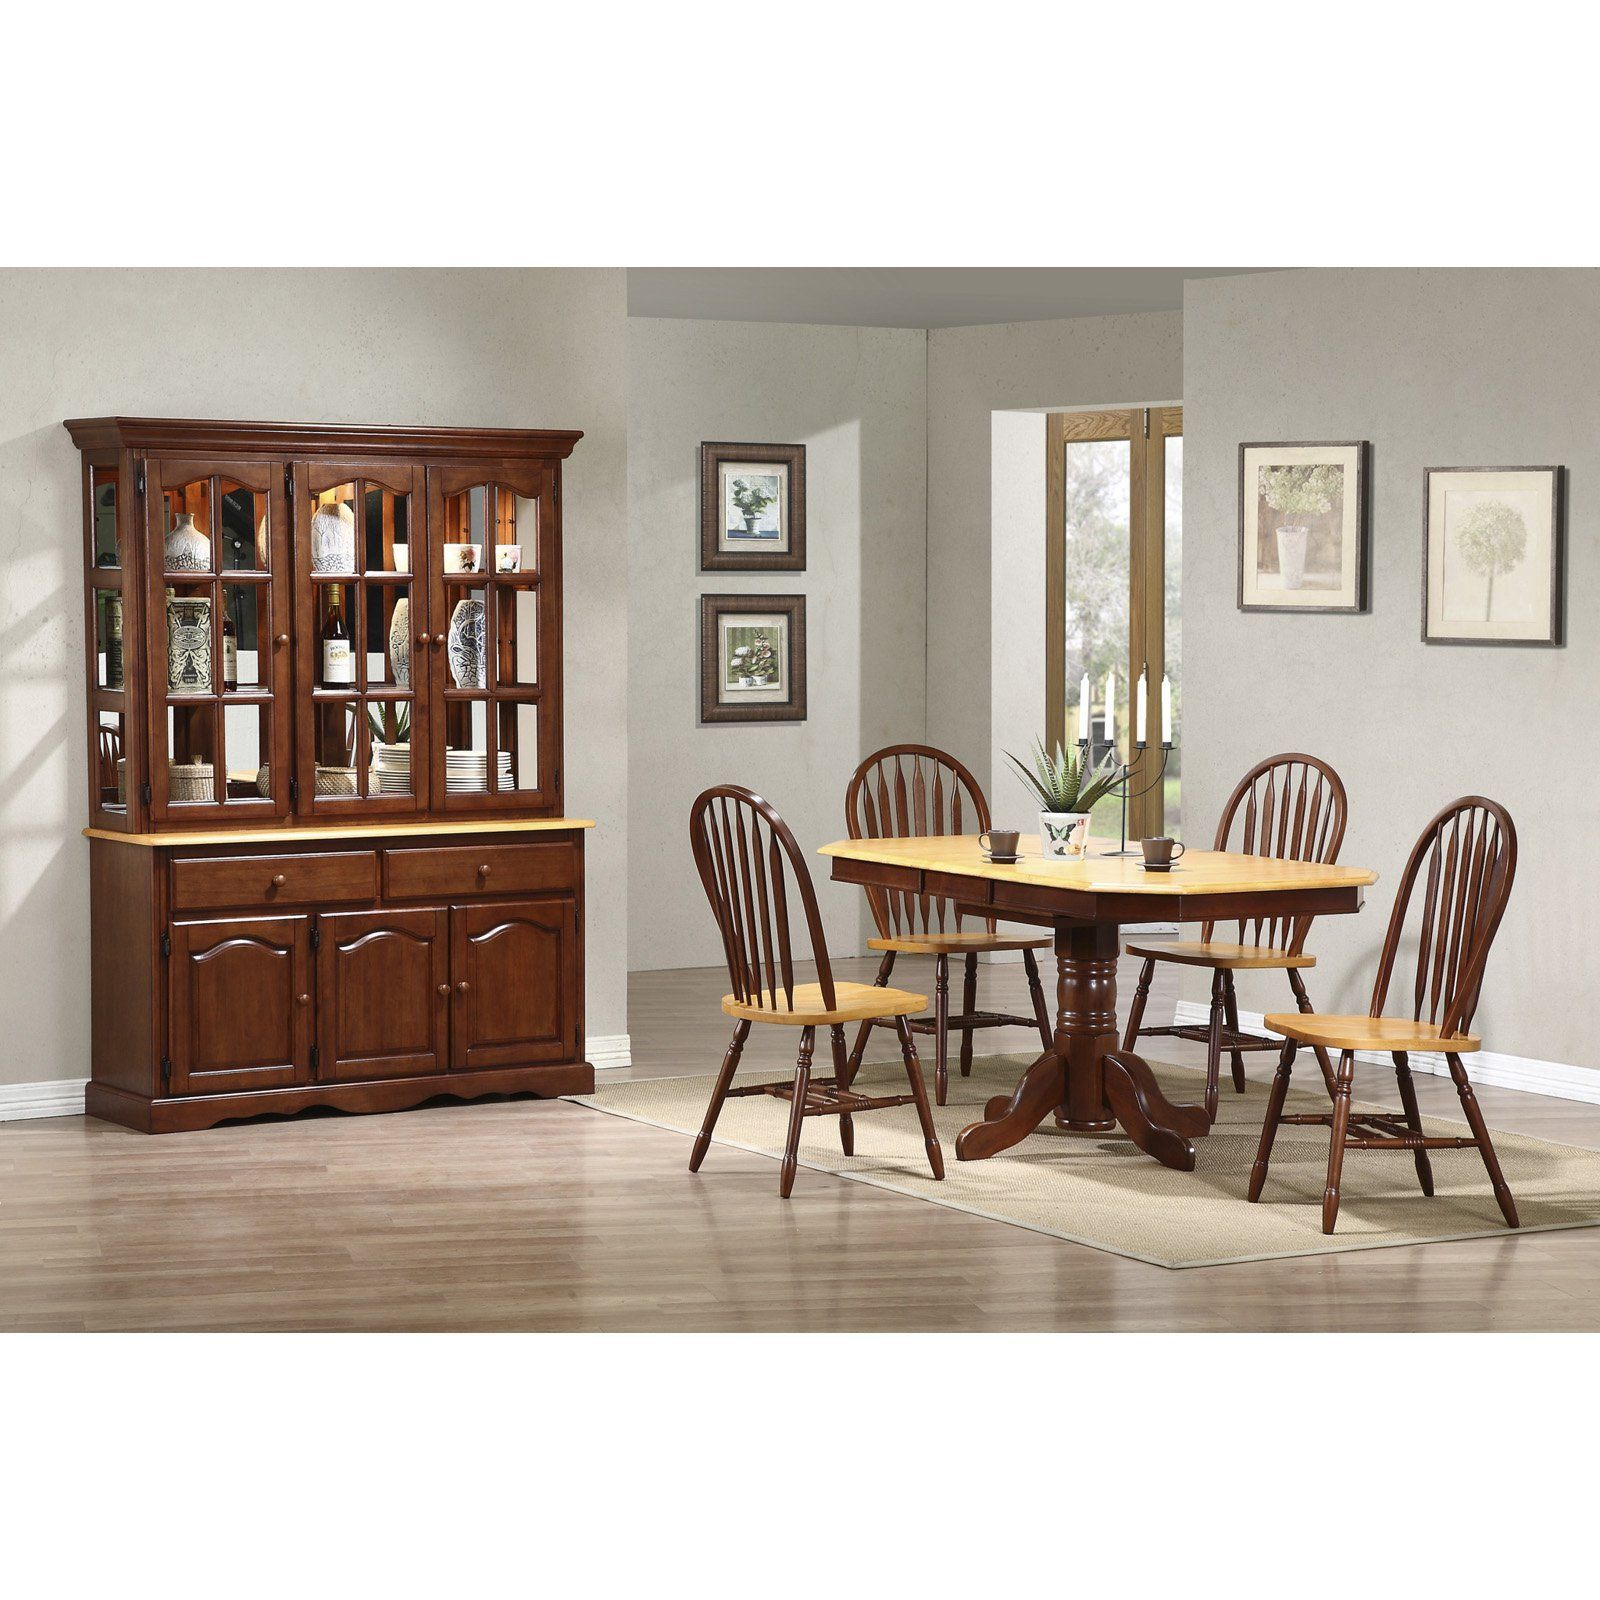 Sunset trading piece pedestal extension dining set with china